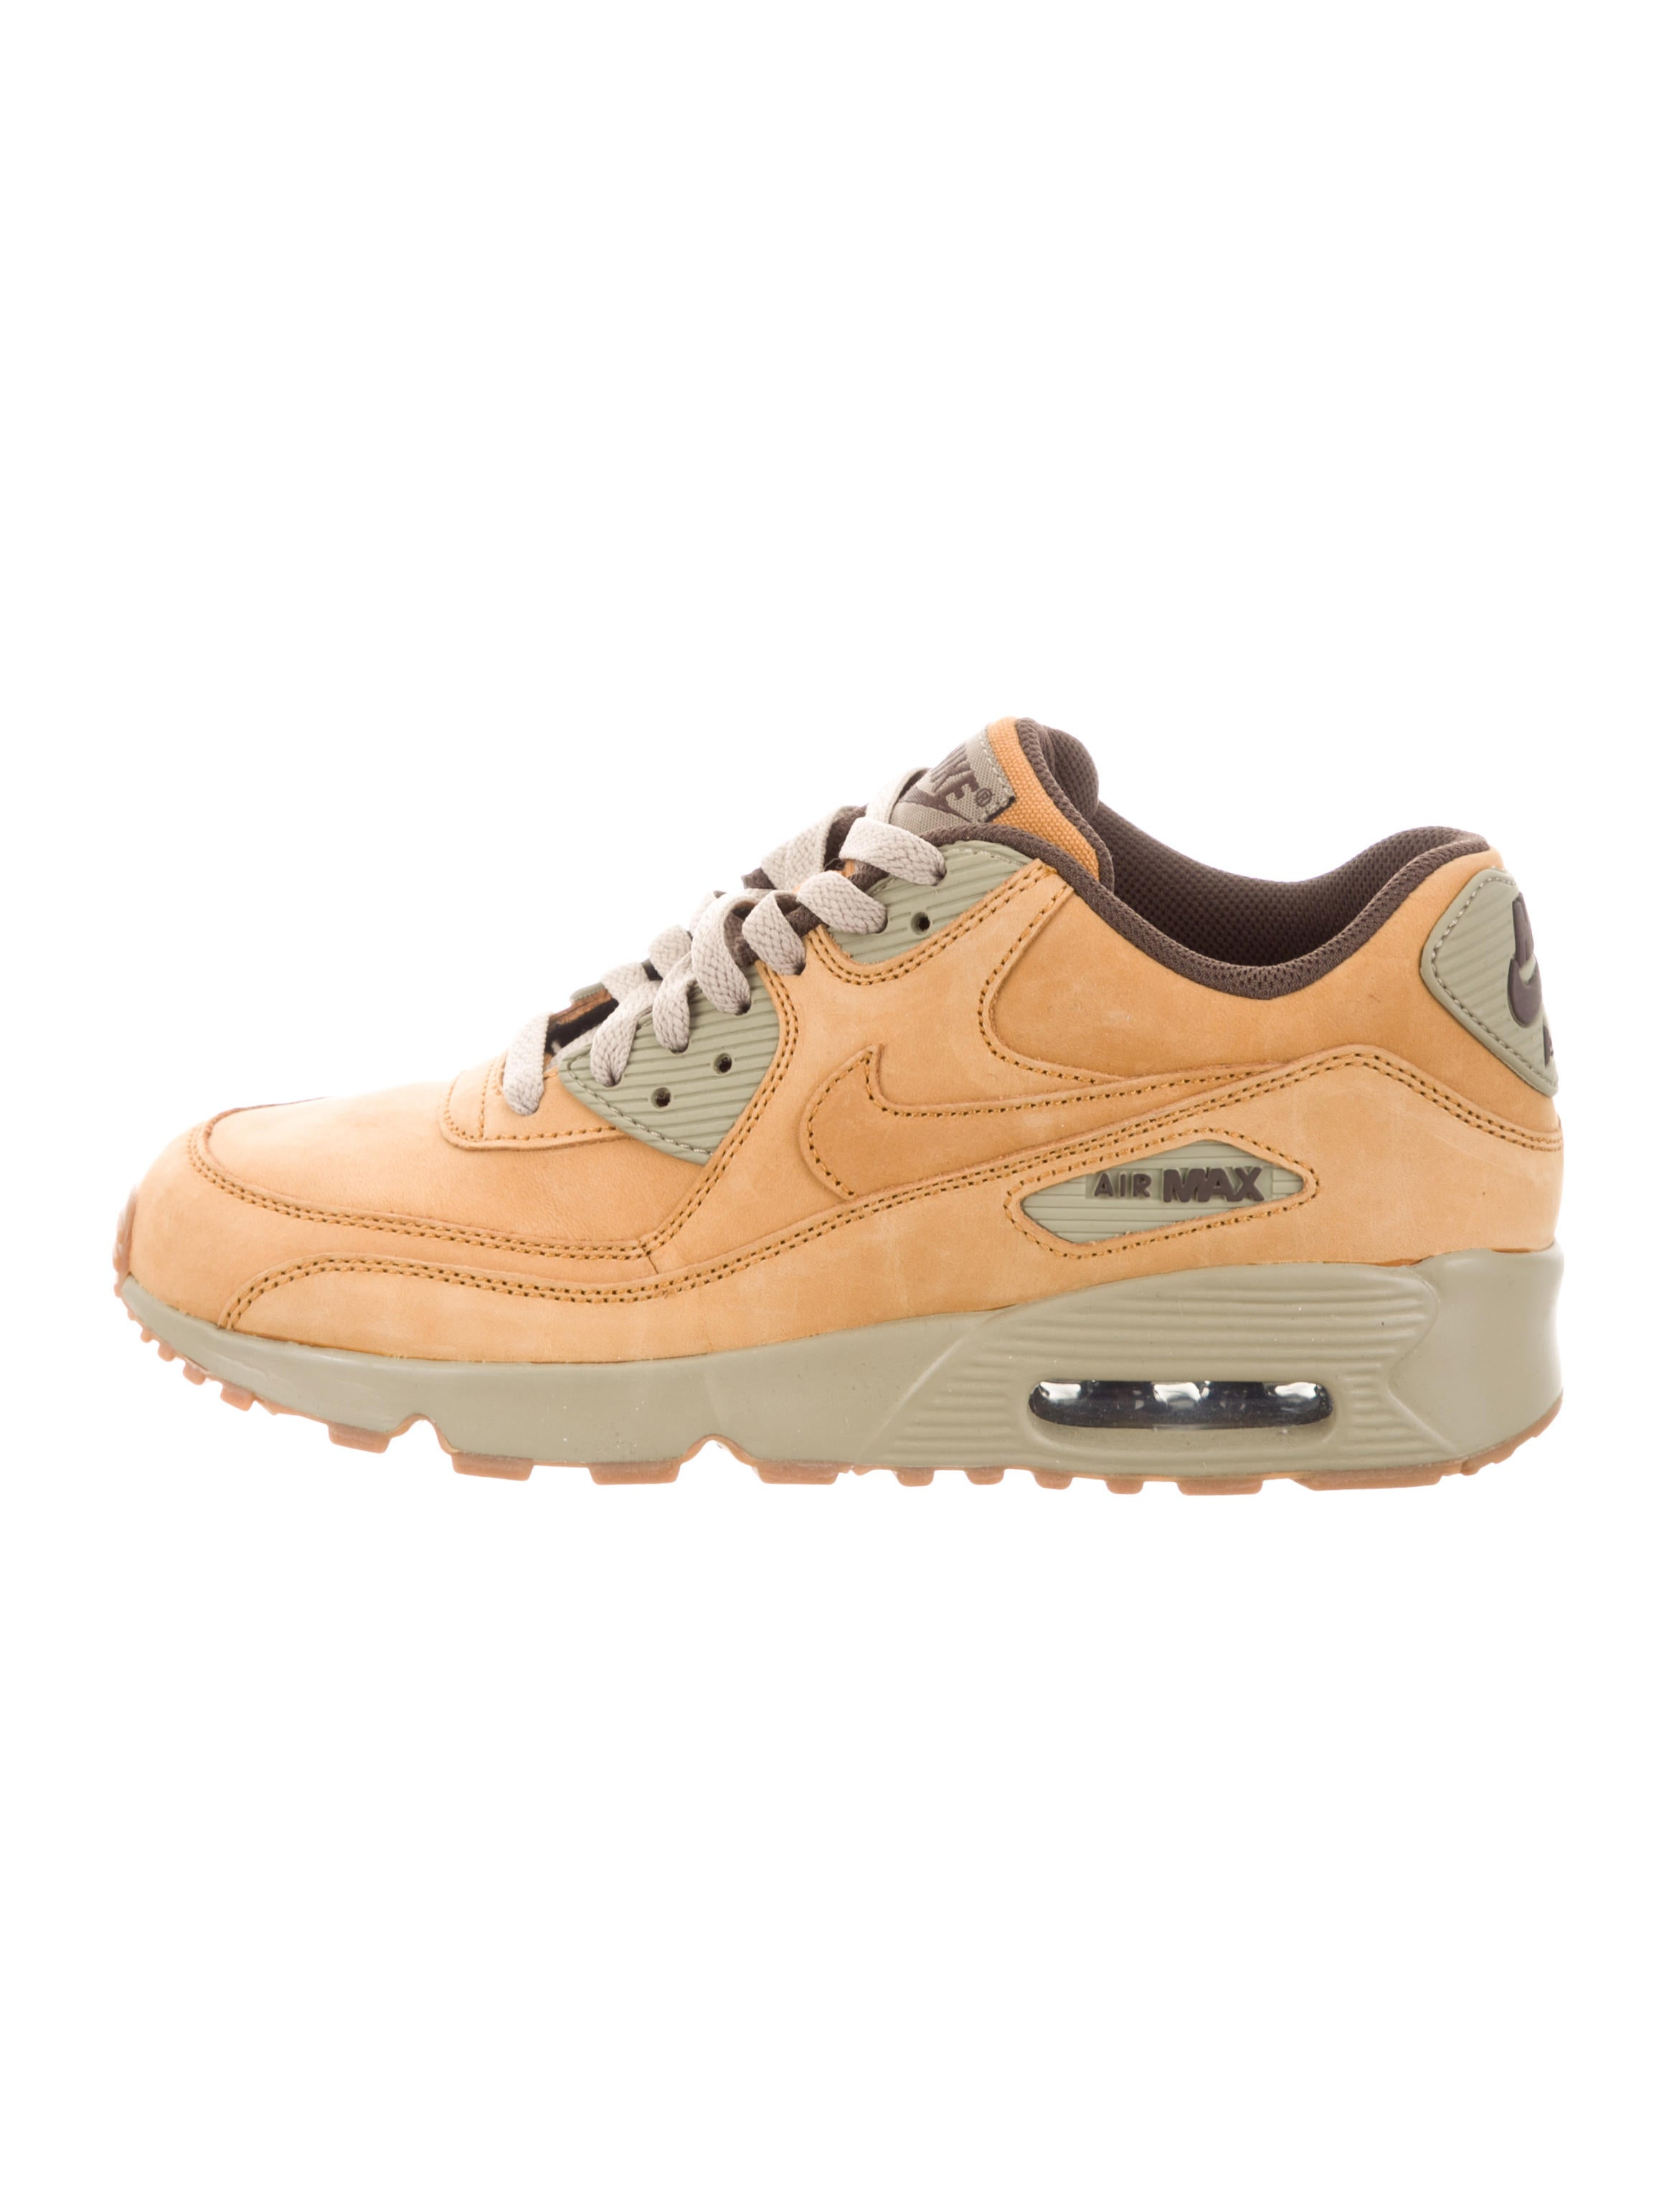 finest selection 0745e 19a9c Kids Air Max 90 Winter PRM Sneakers